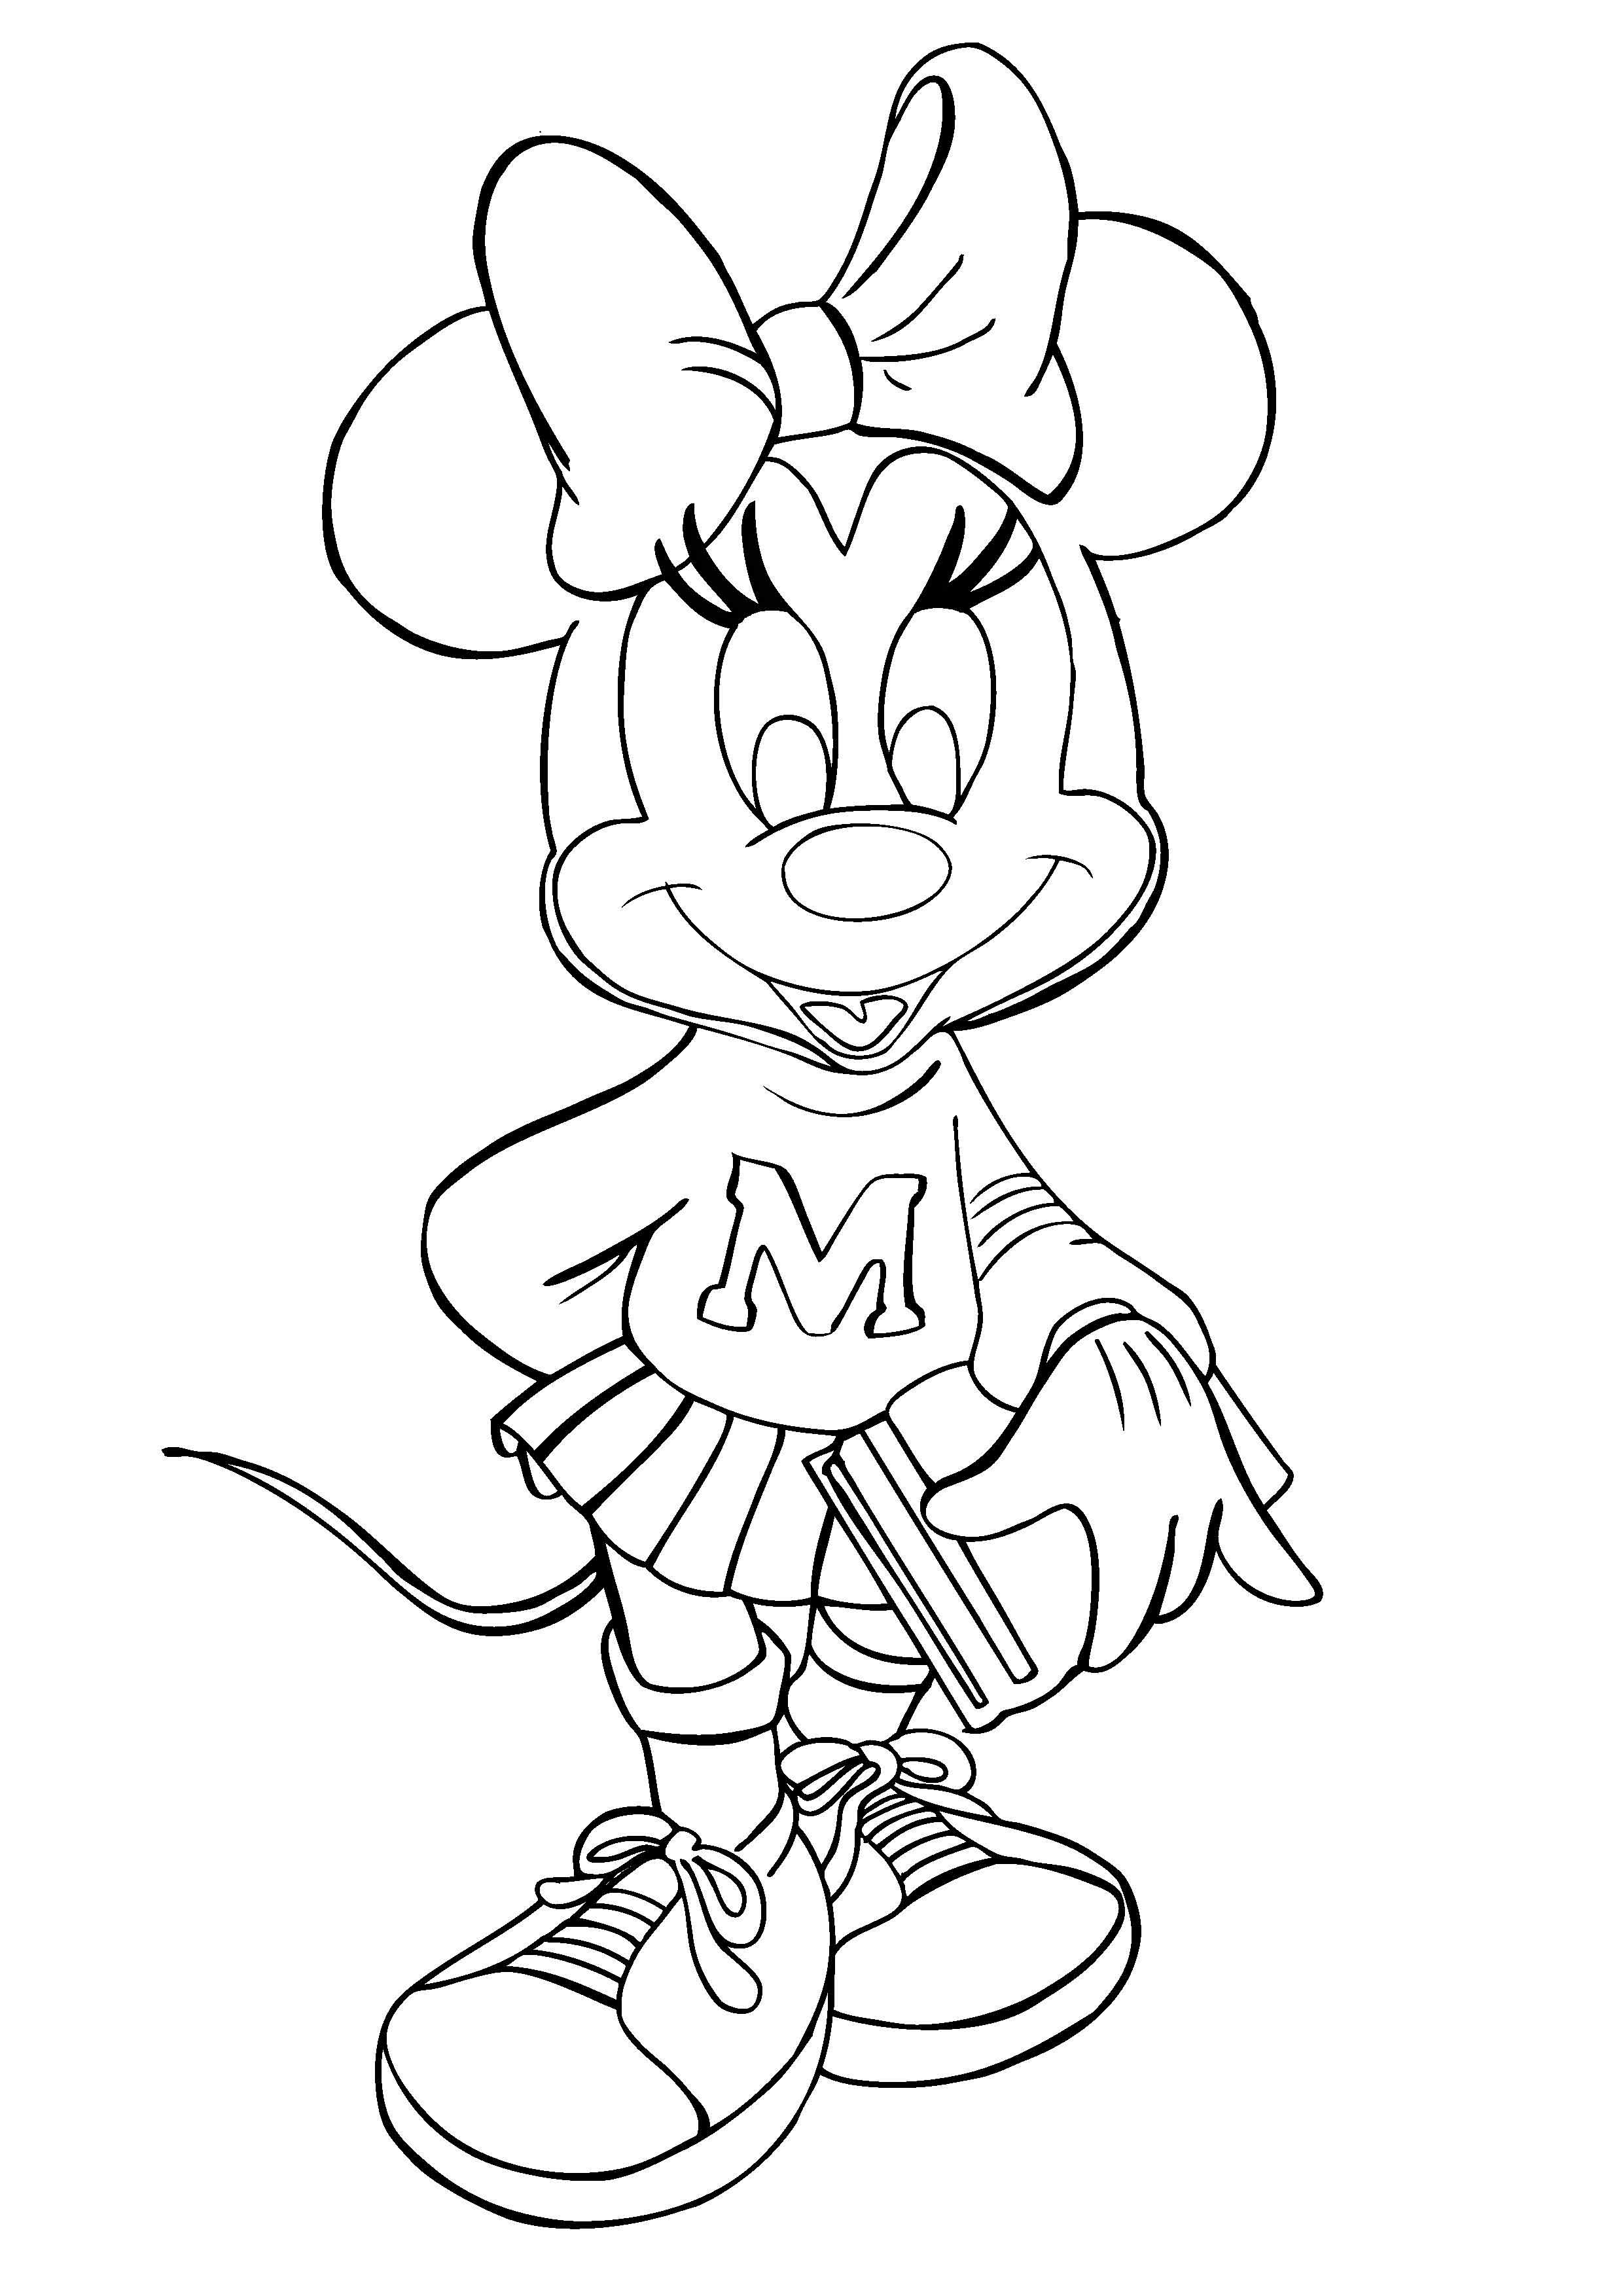 Free printable minnie mouse coloring pages for kids for Coloring pages toddler